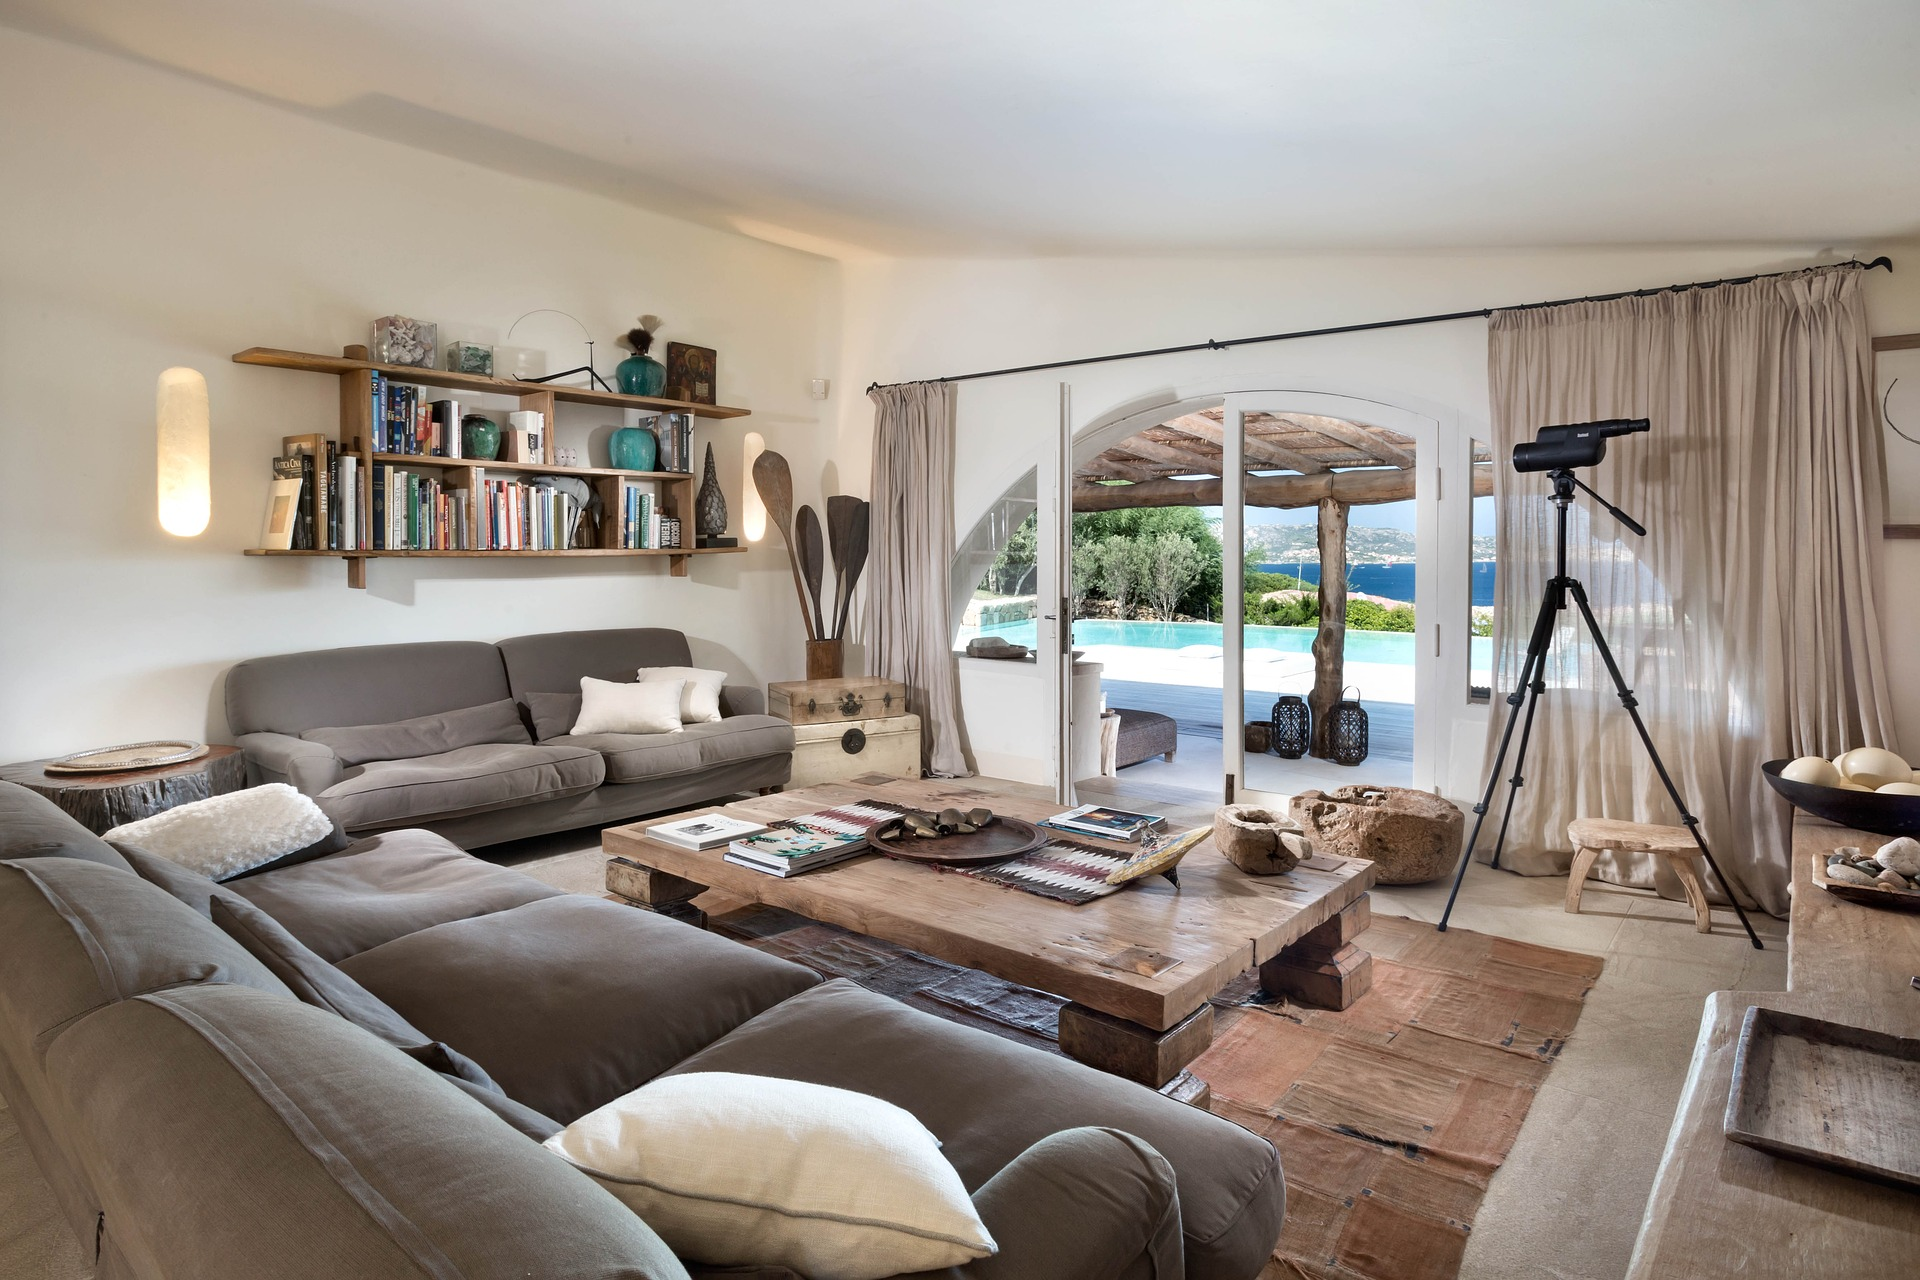 Im Wohnzimmer It S All About Interior Pinterest Living Room Qualche Idea Su Come Arredare Un Soggiorno